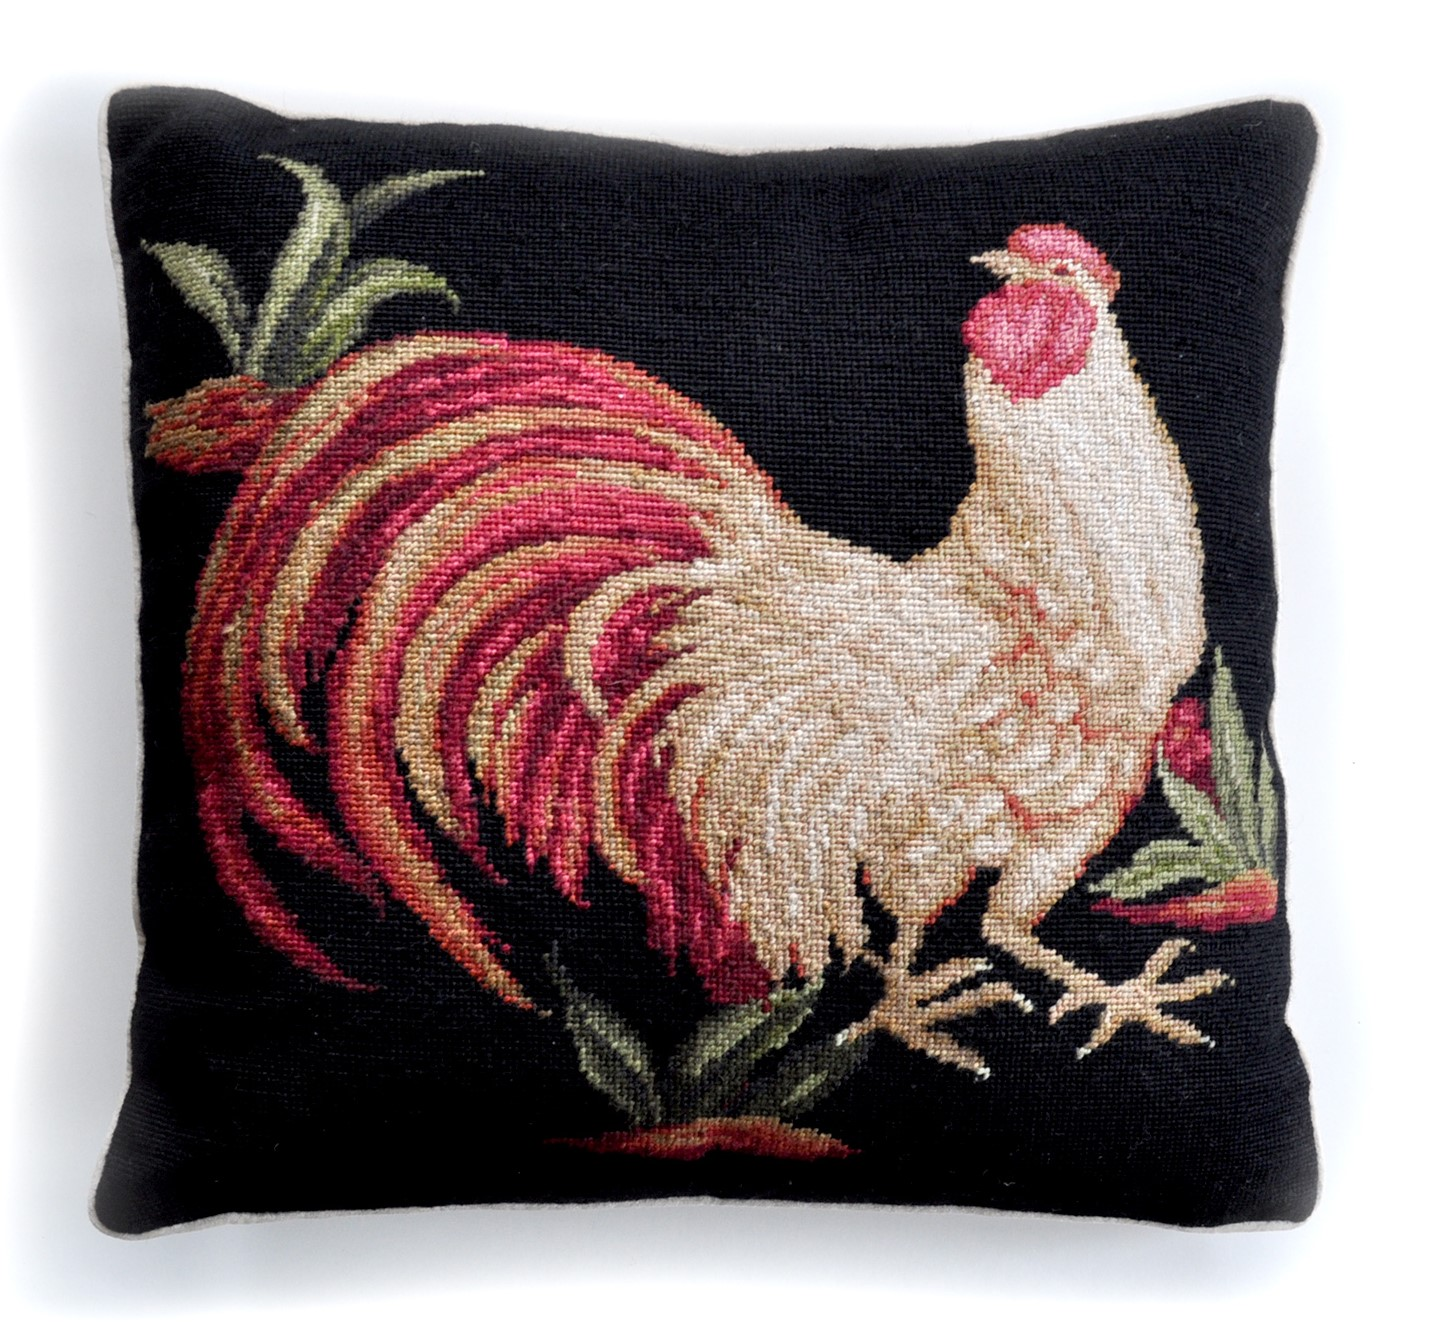 20″x20″ Rooster Needlepoint Pillow Cover 12980133